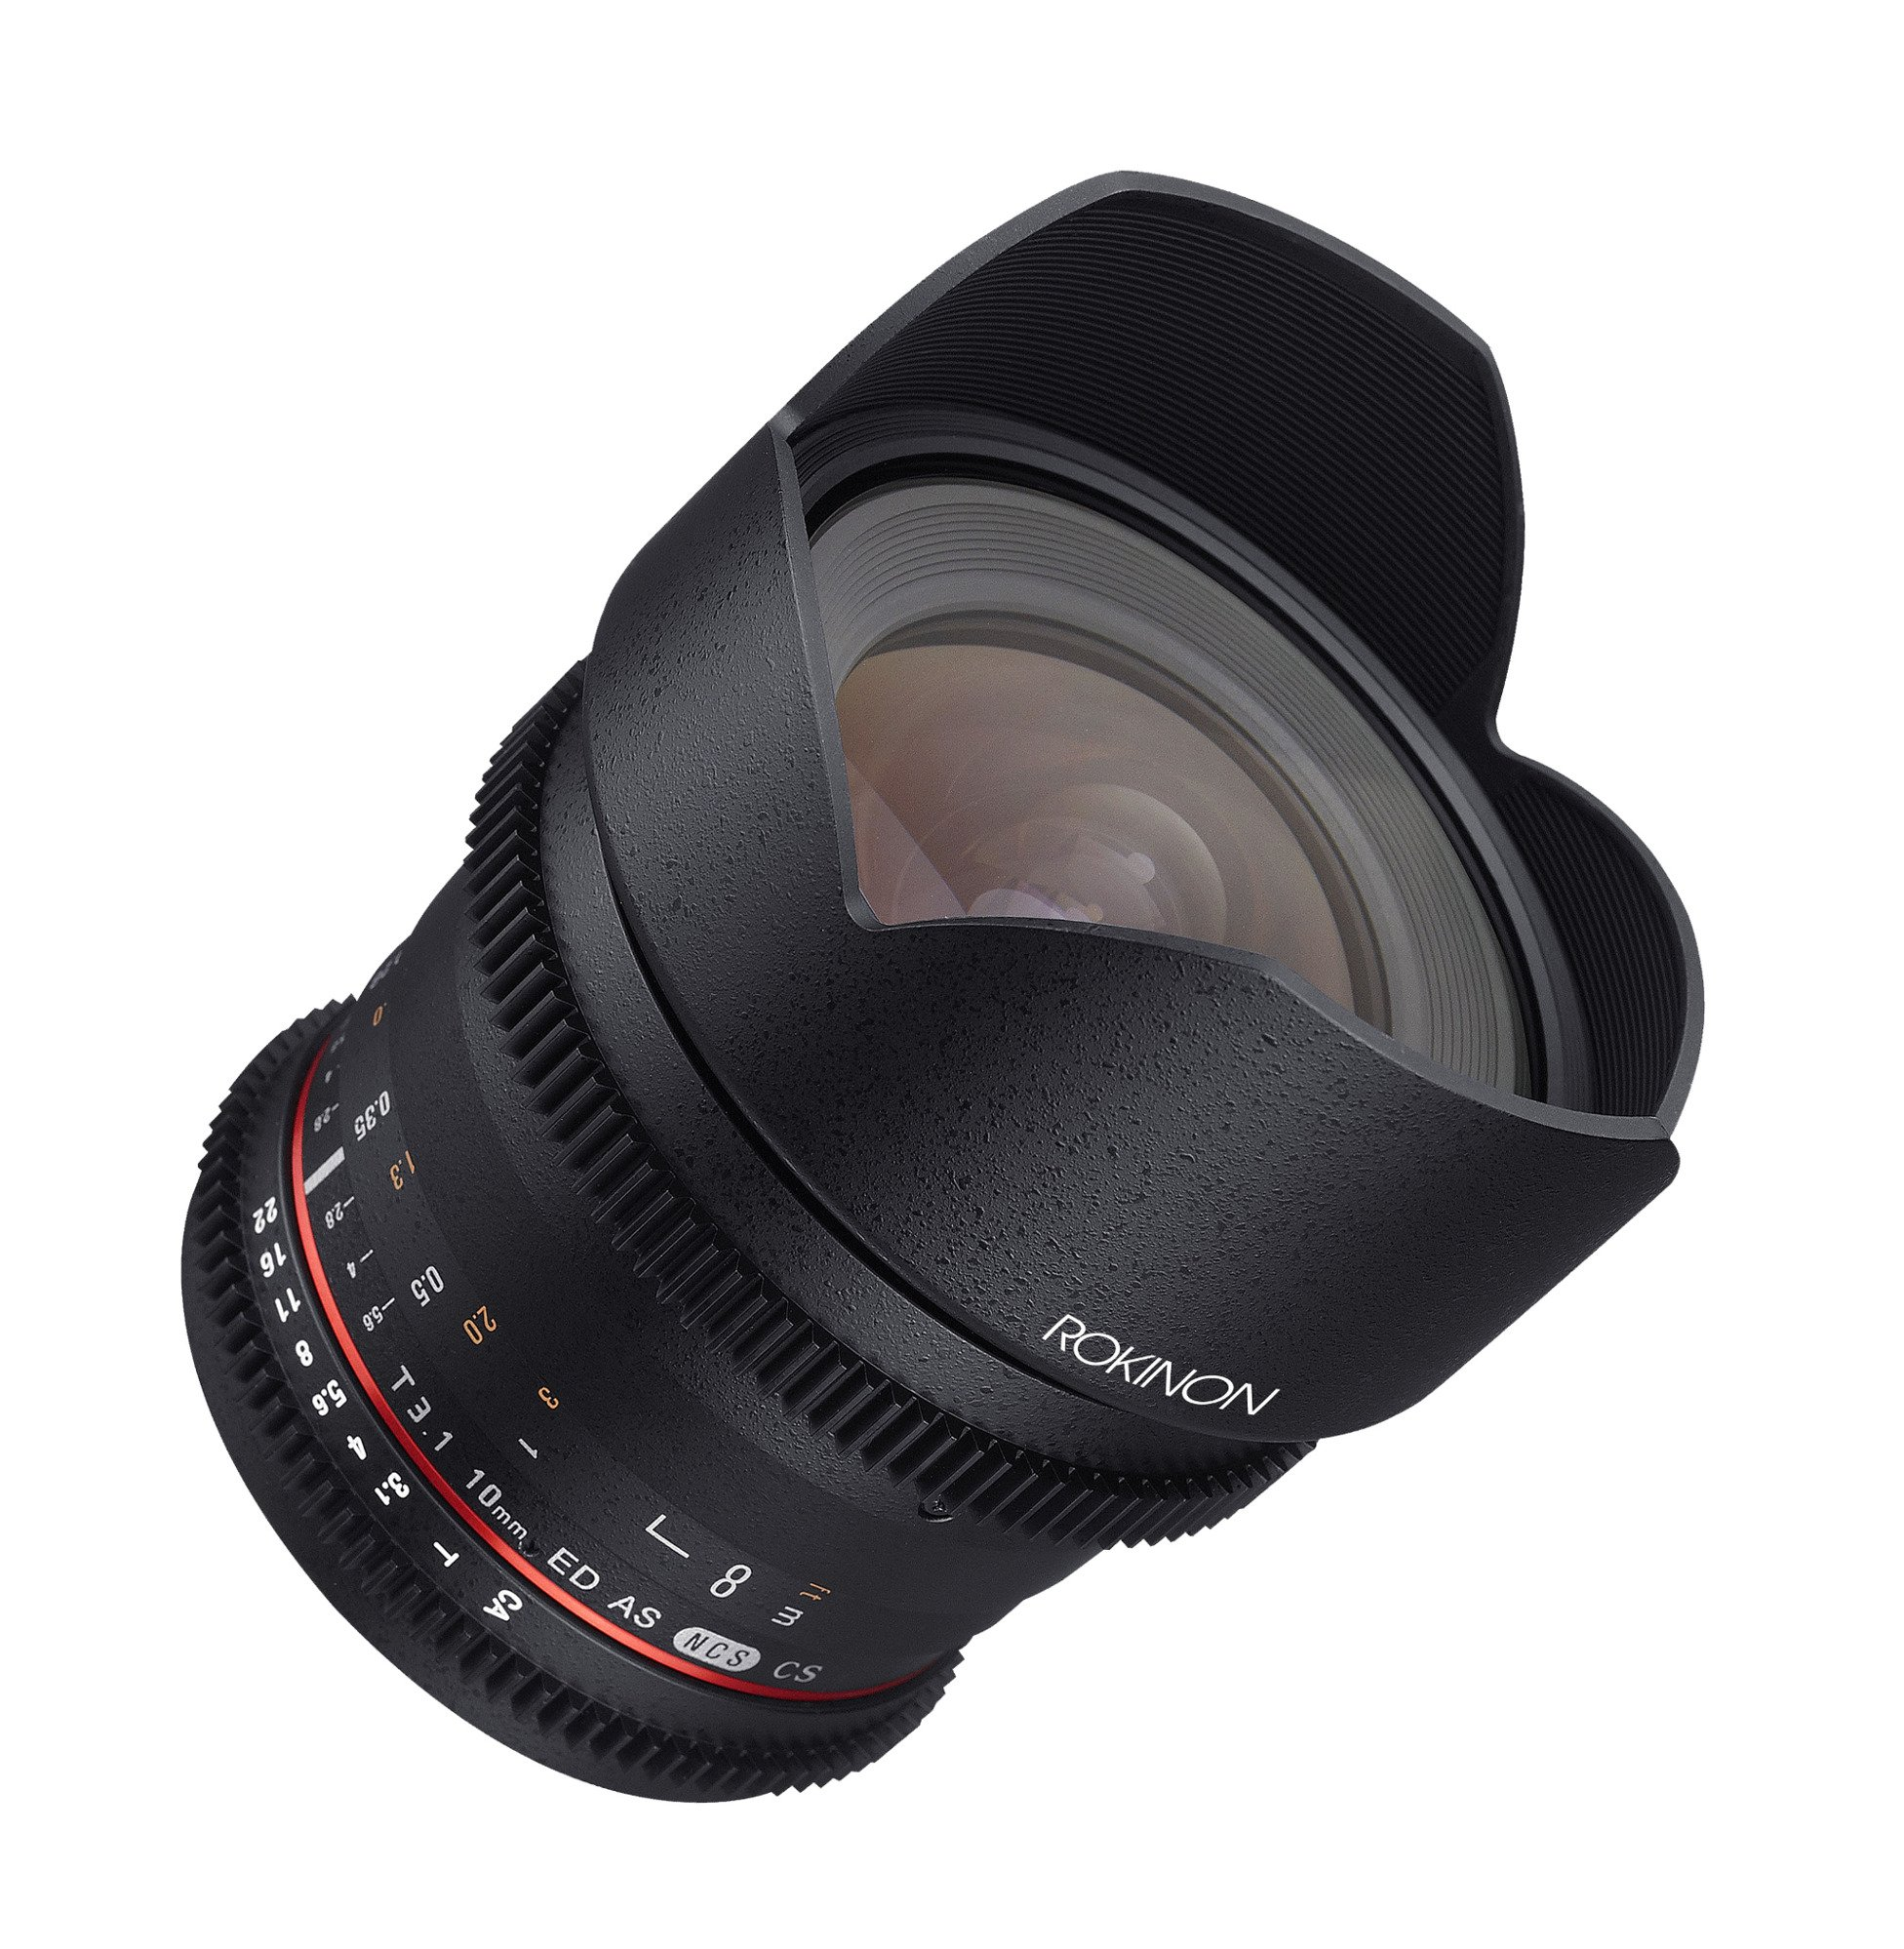 Cine DS Ultra Wide Angle Lens